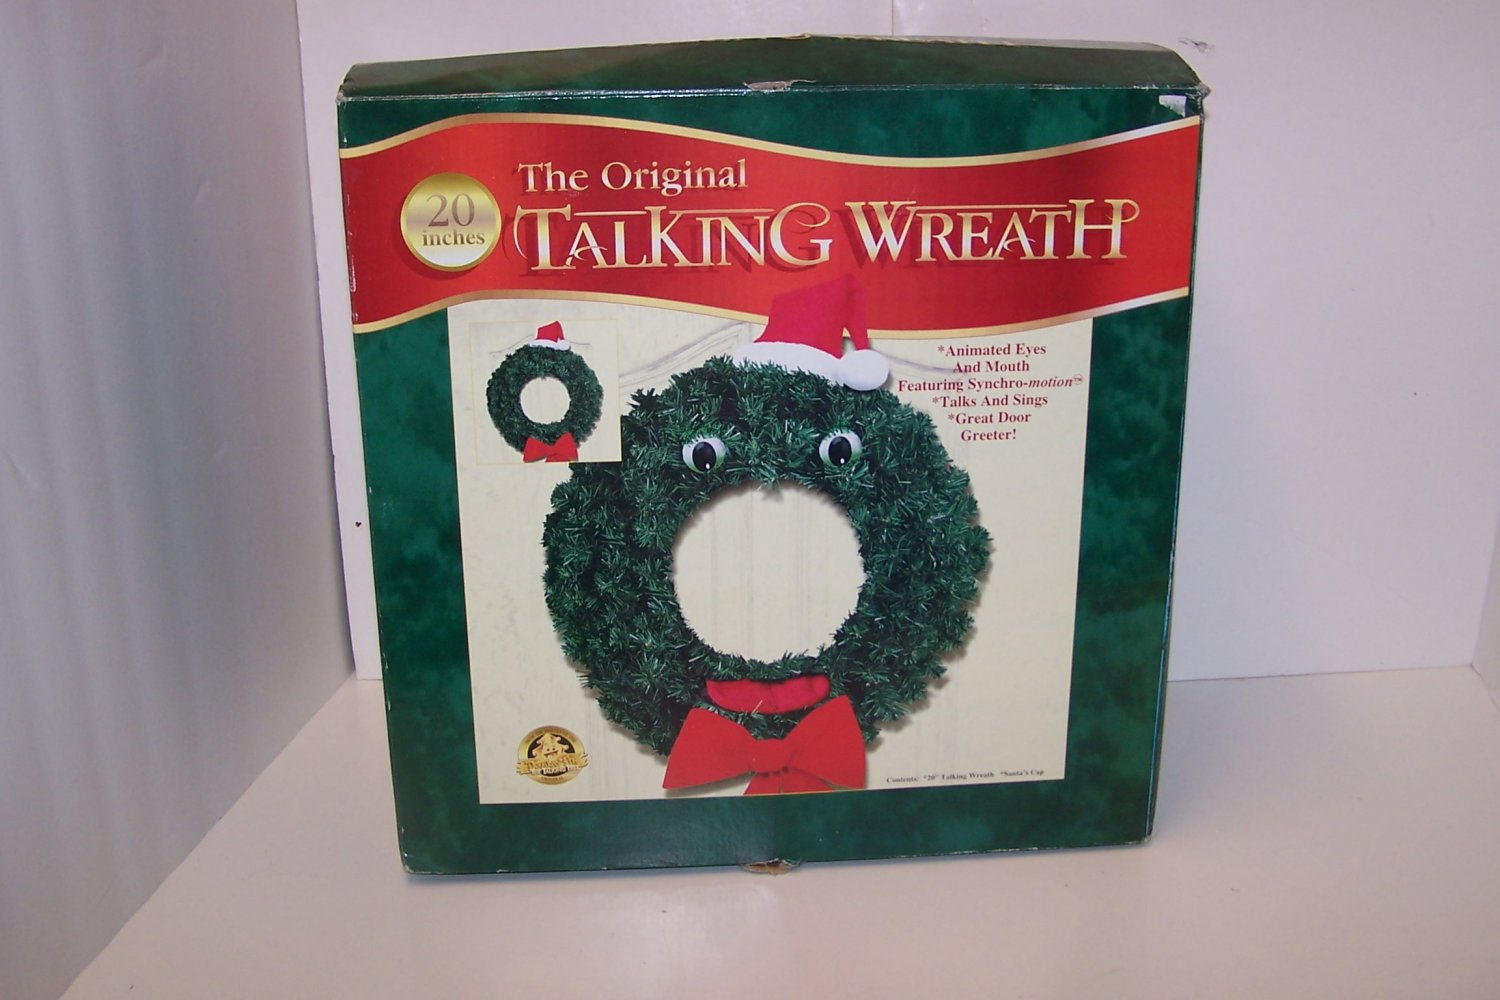 The Original Talking Wreath 20 inches  Gemmy Industries